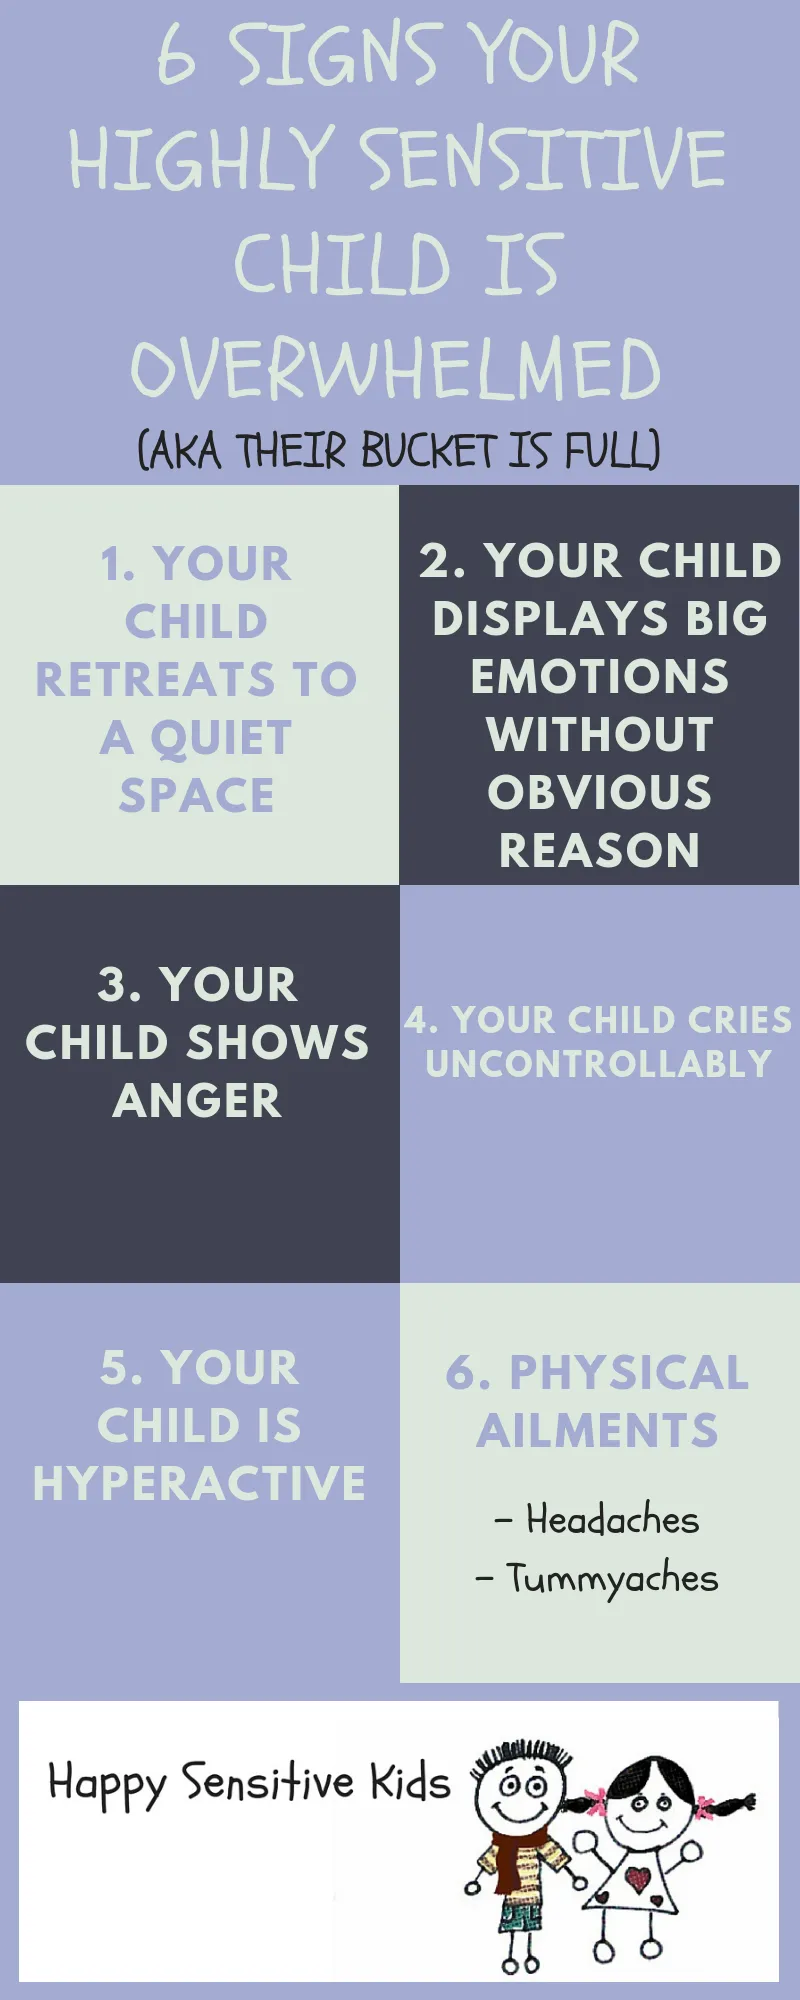 My Highly Sensitive Child is Overwhelmed. Here are 6 signs - Happy Sensitive Kids